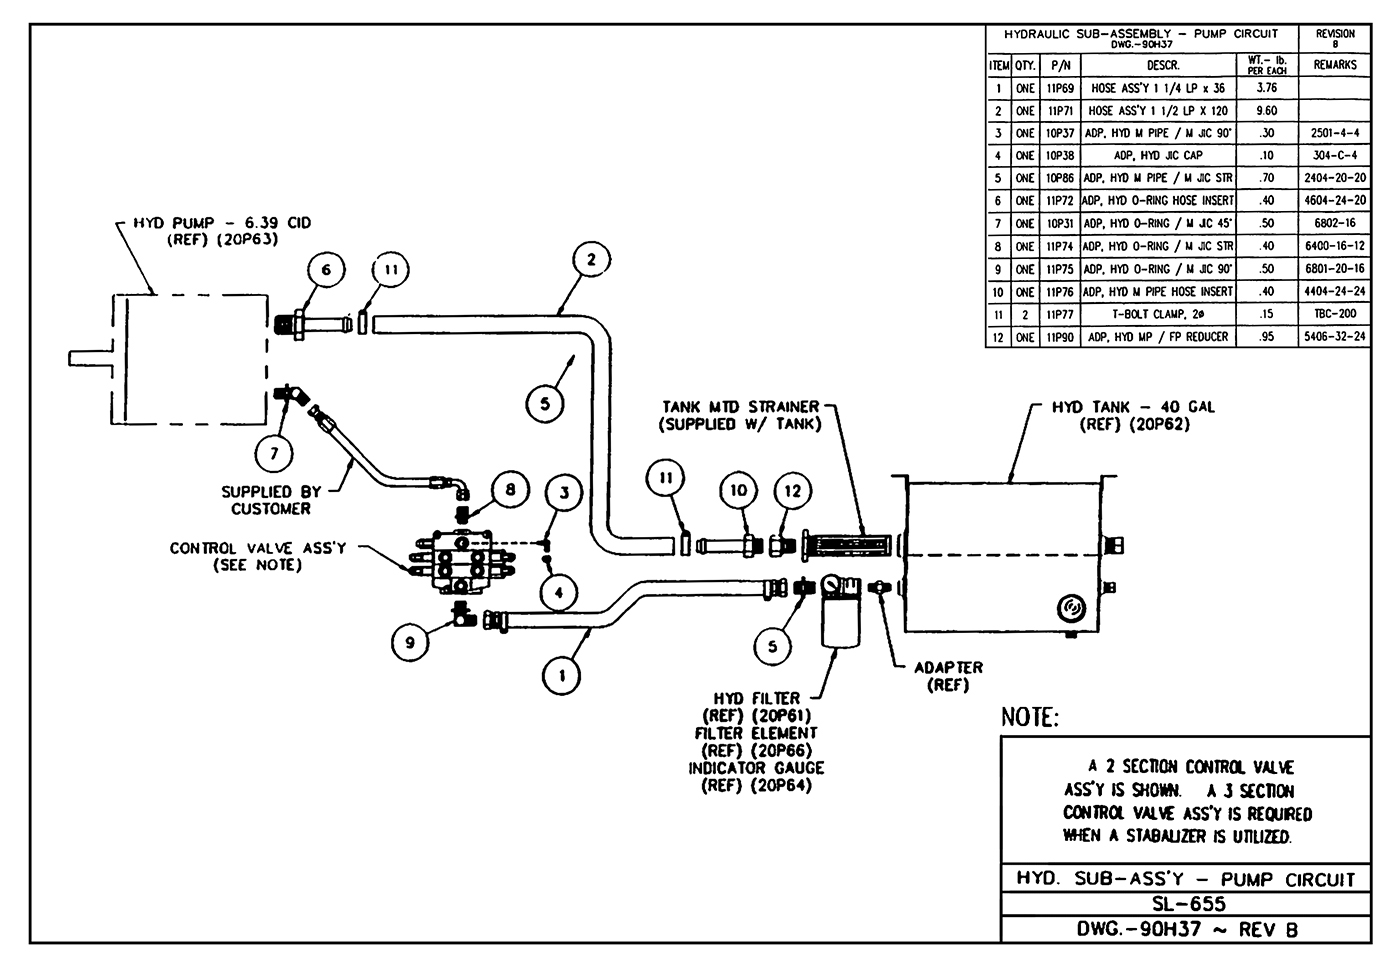 SL-655 Hydraulic Sub-Assembly (Pump Circuit) Diagram